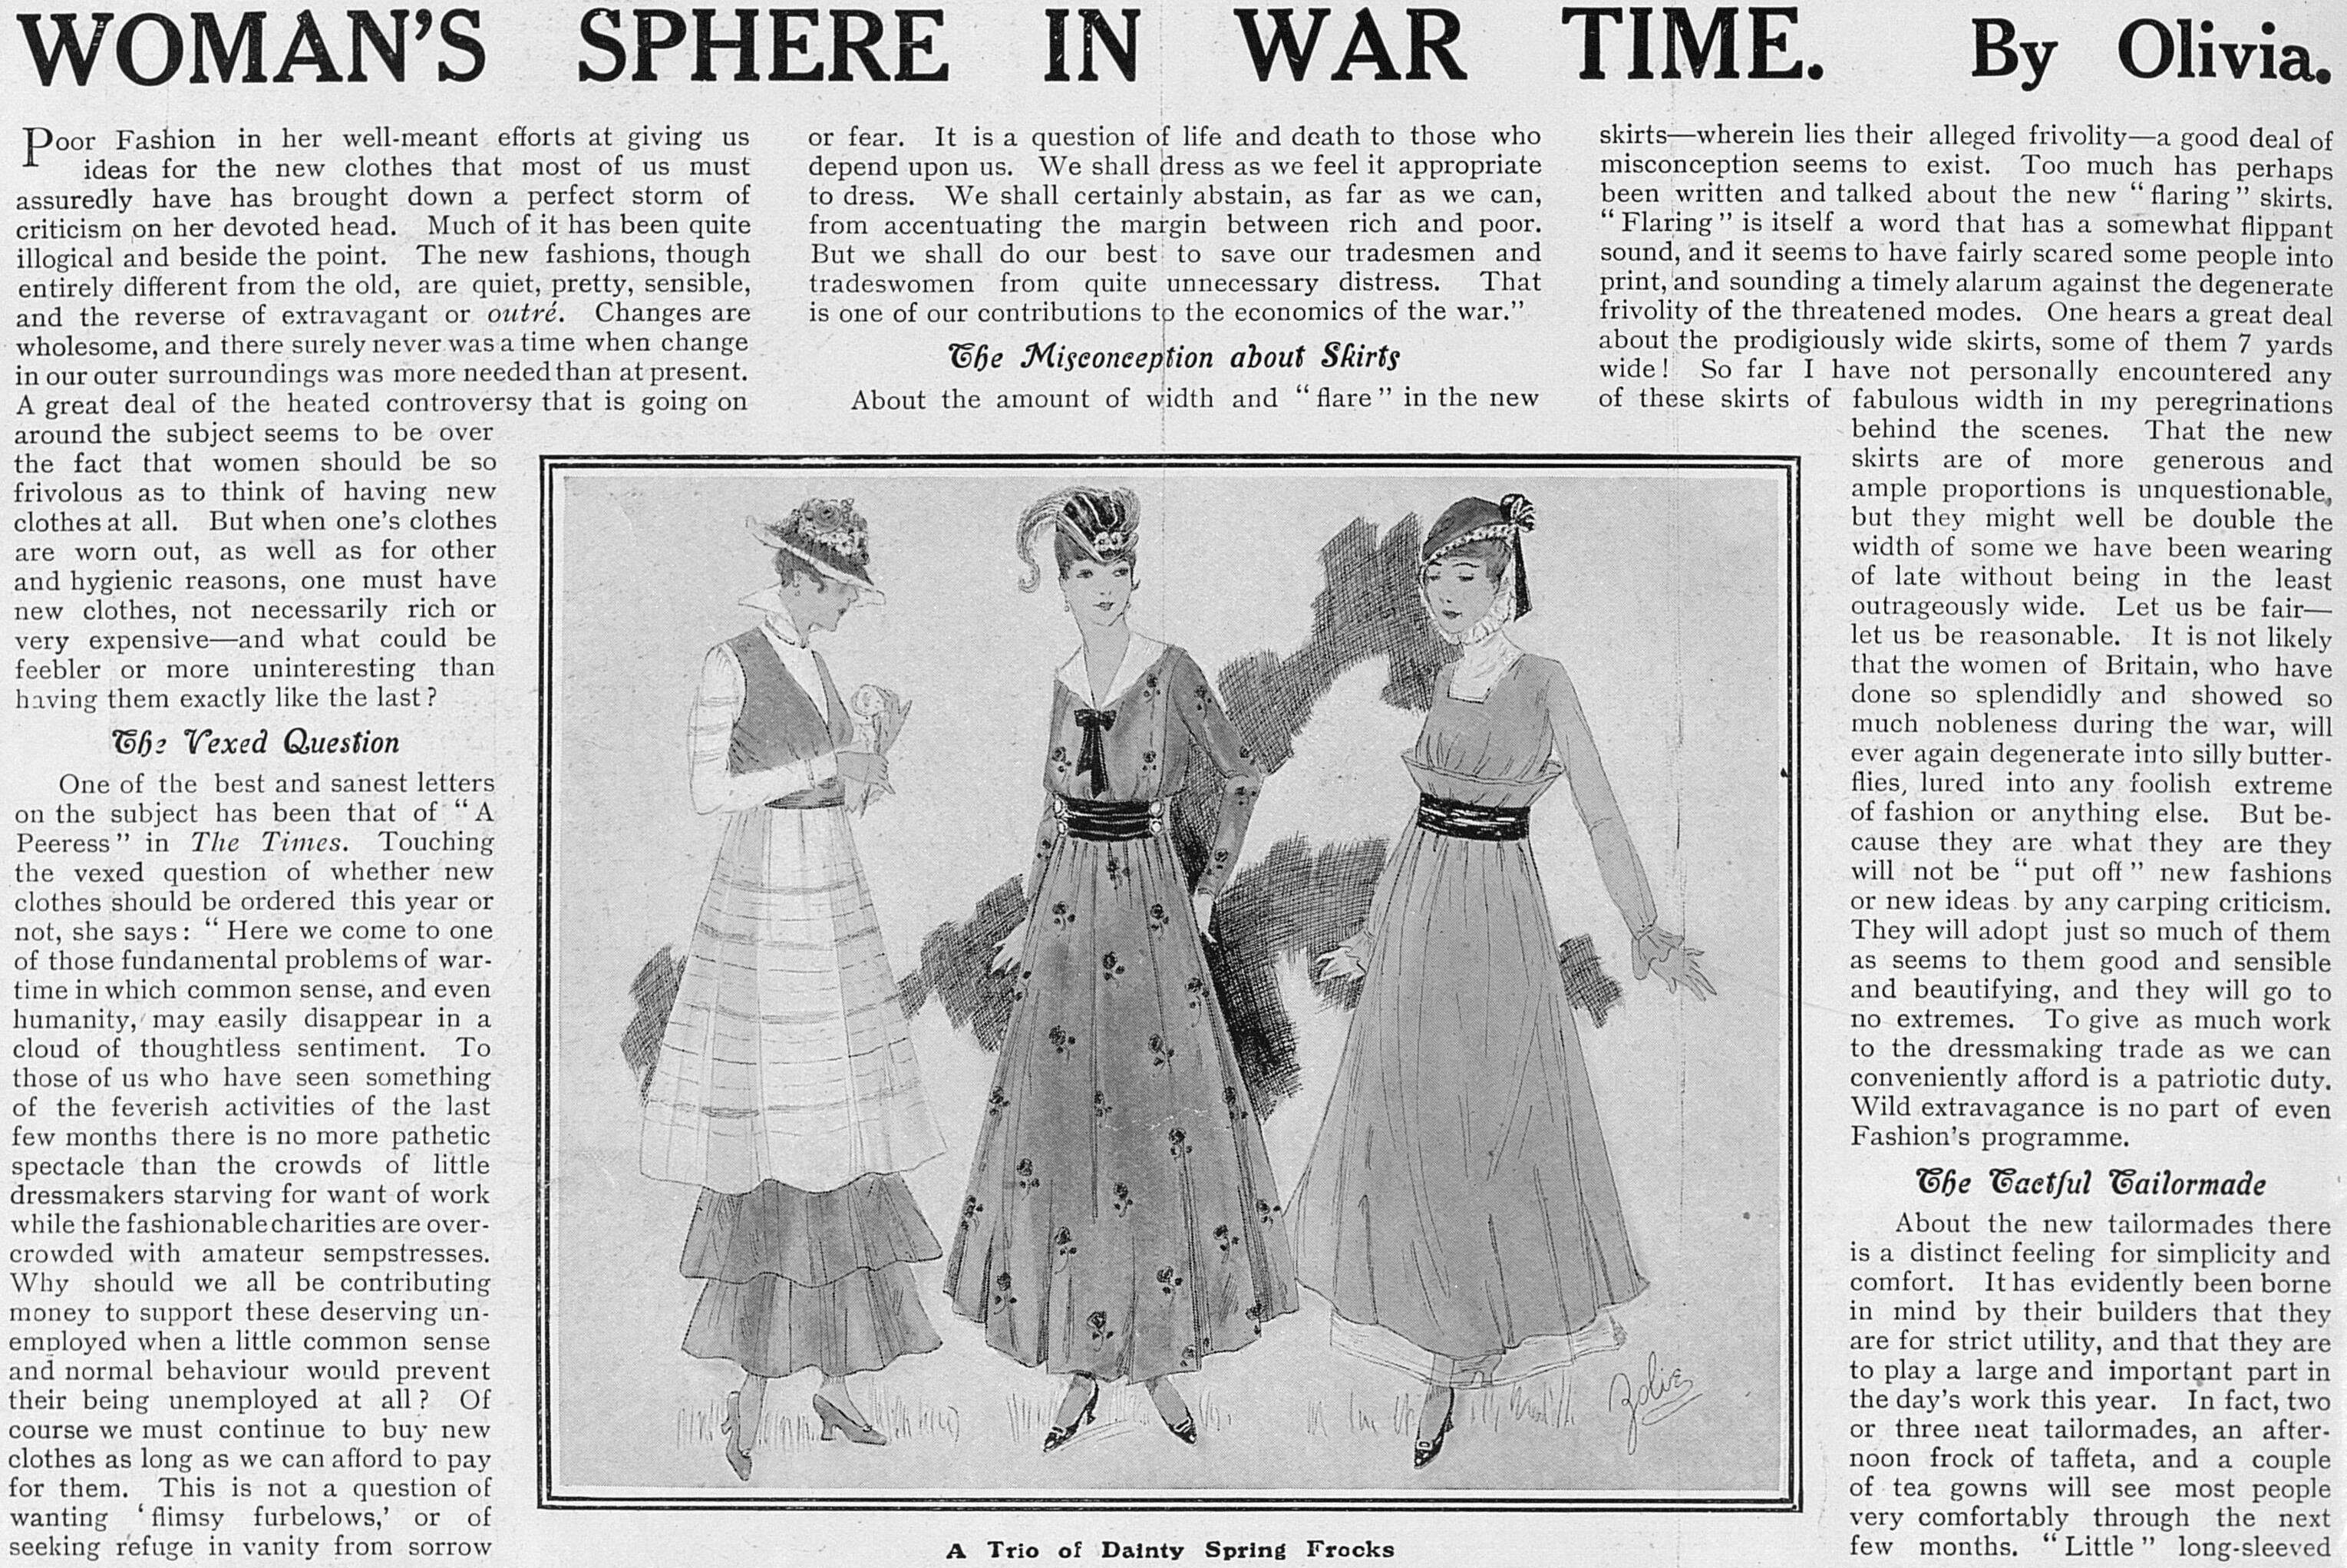 WomansSphereInWarTime_27Mar1915